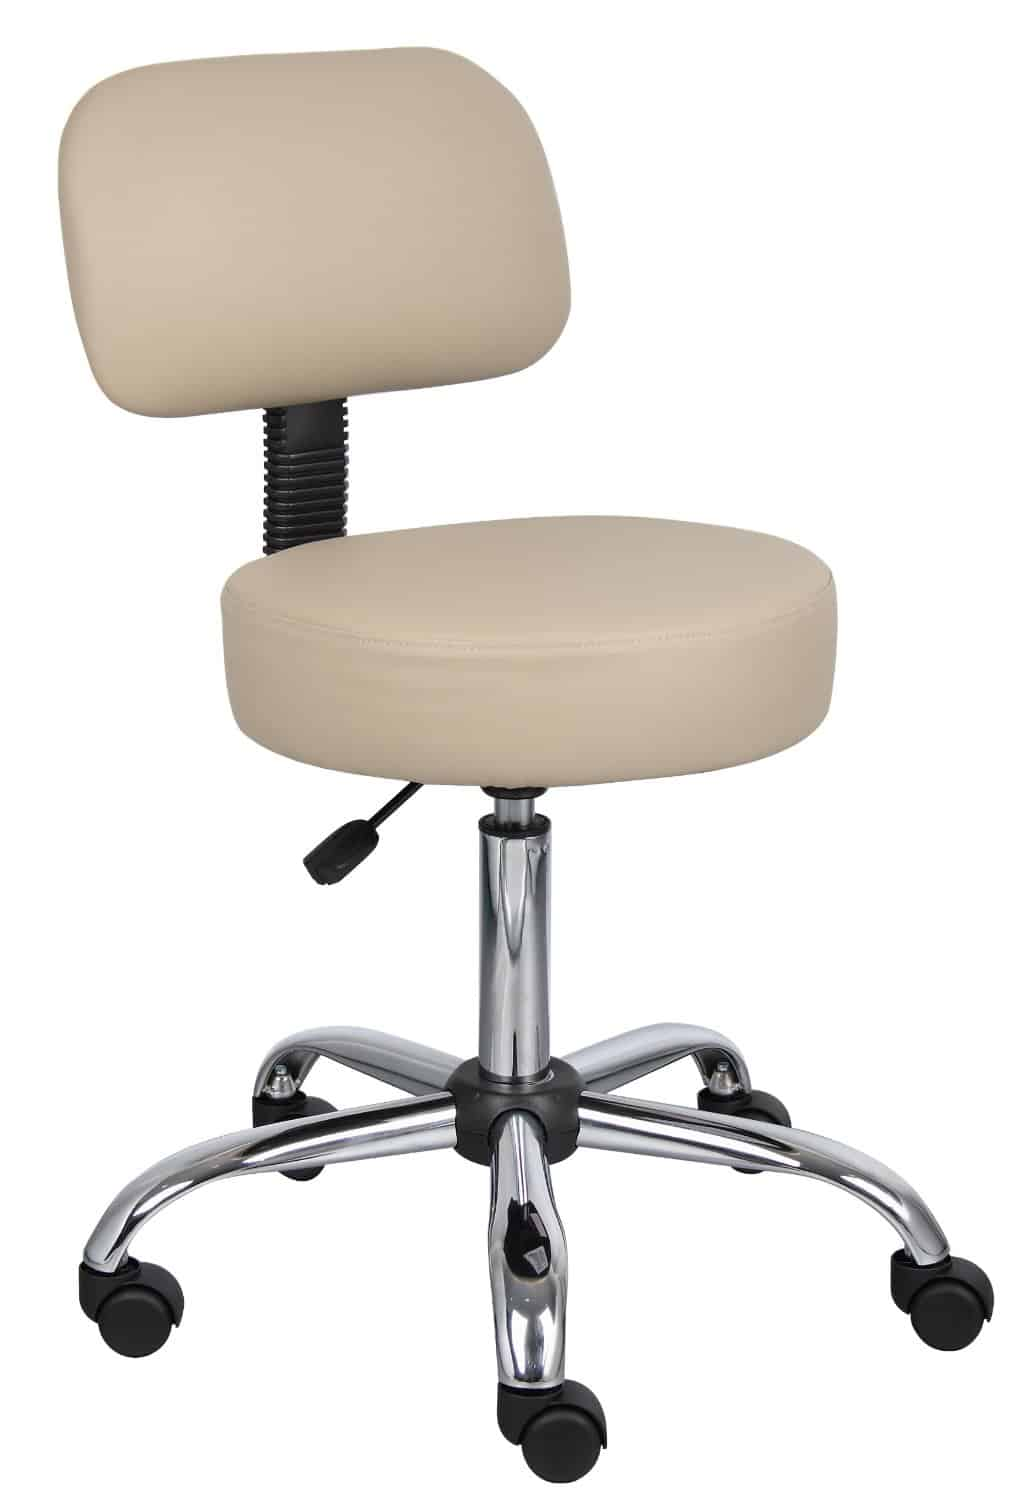 doctor office chairs